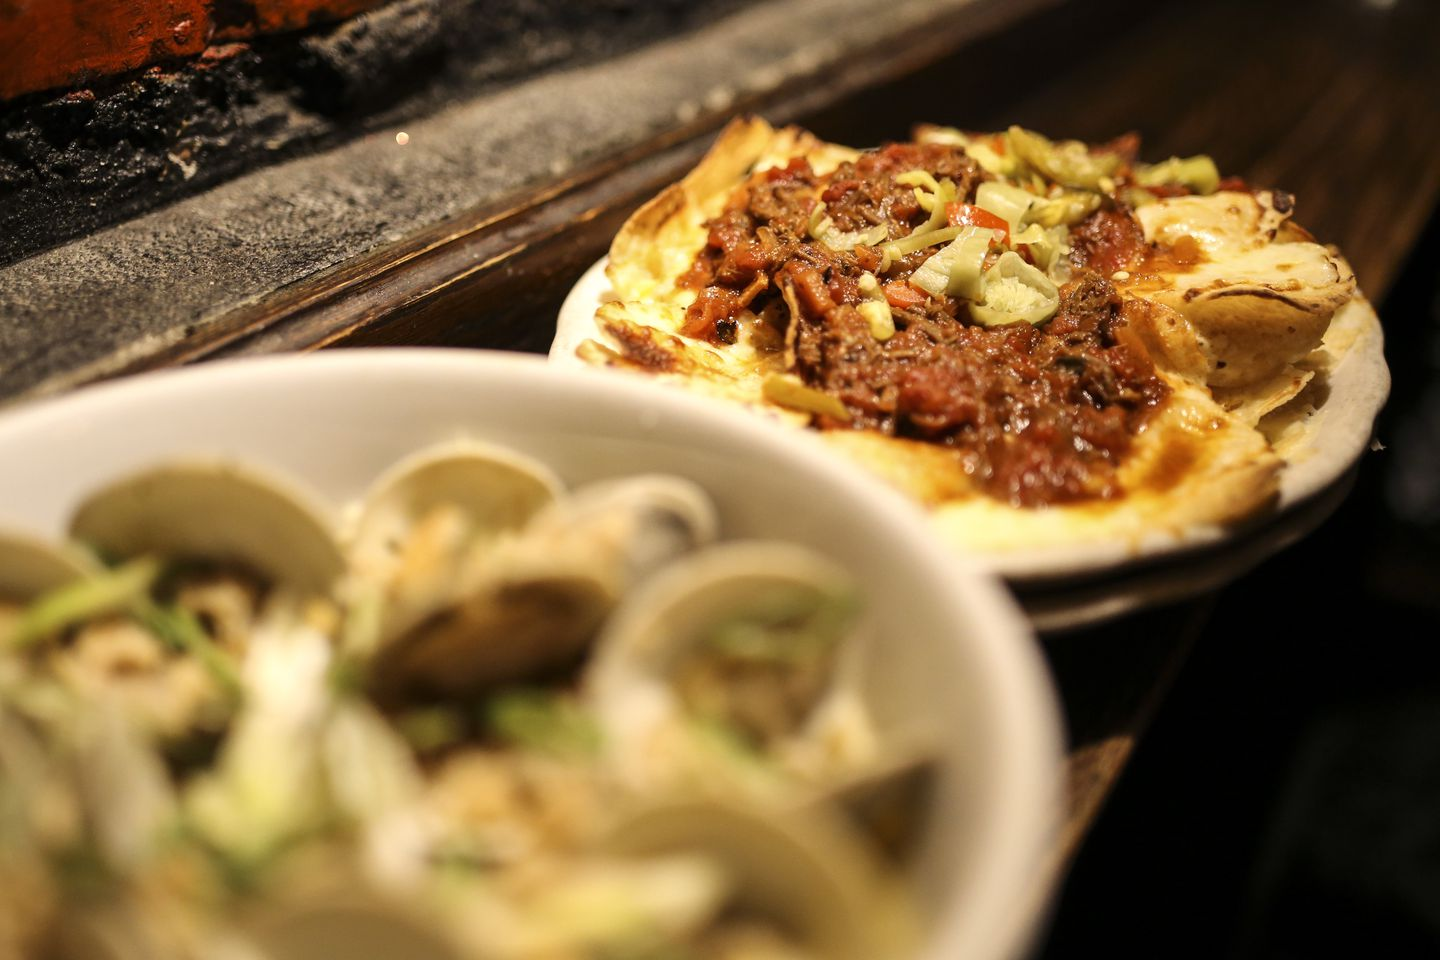 Italian nachos are crisp corn chips topped with braised short-rib ragu, ricotta, and pepperoncini.